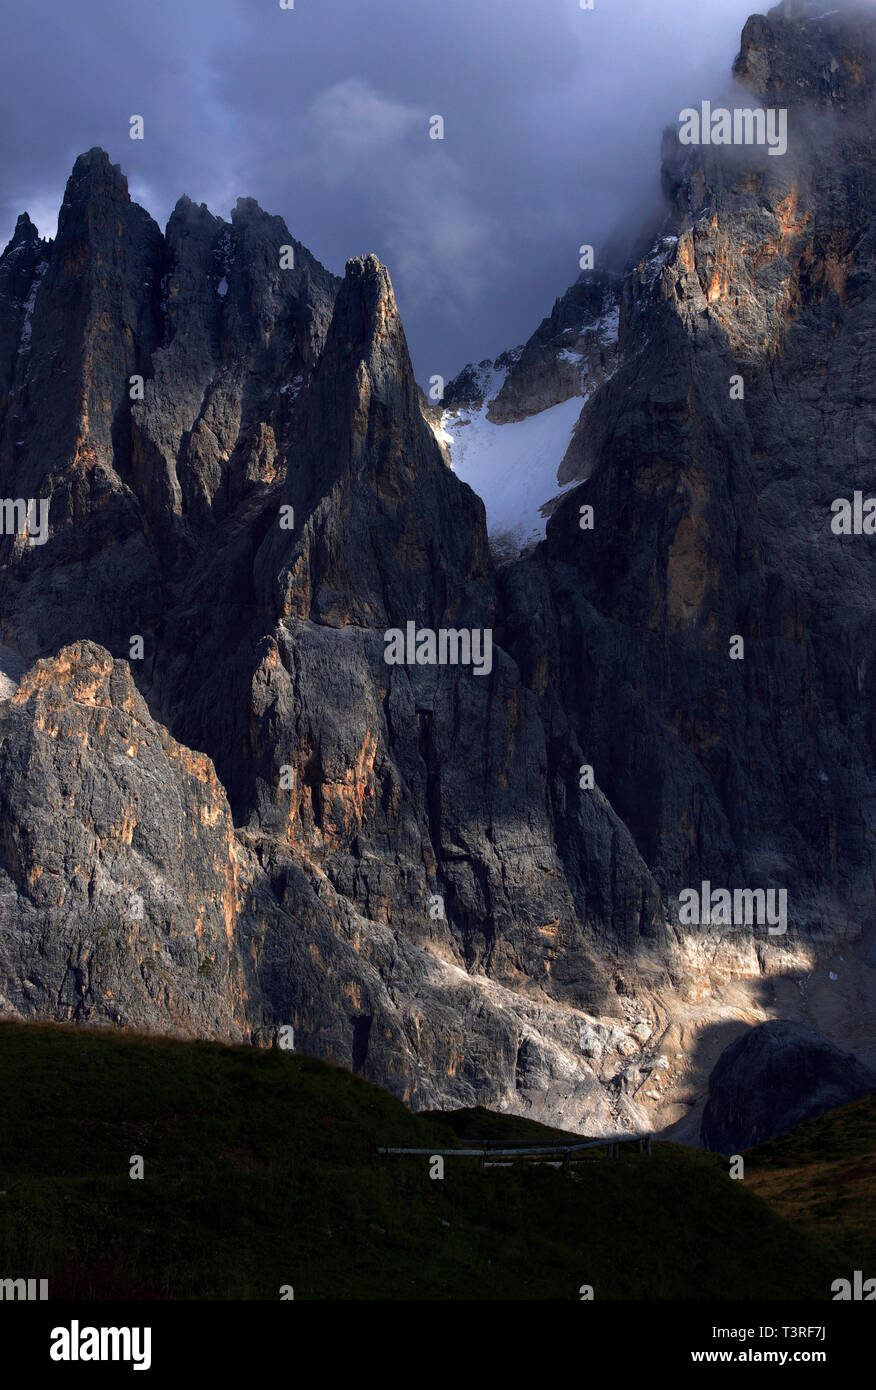 A close-up view on some of the amazing jagged peaks of the Pale di San Martino, one of the most famous and beautiful groups of the Dolomites, as seen  - Stock Image